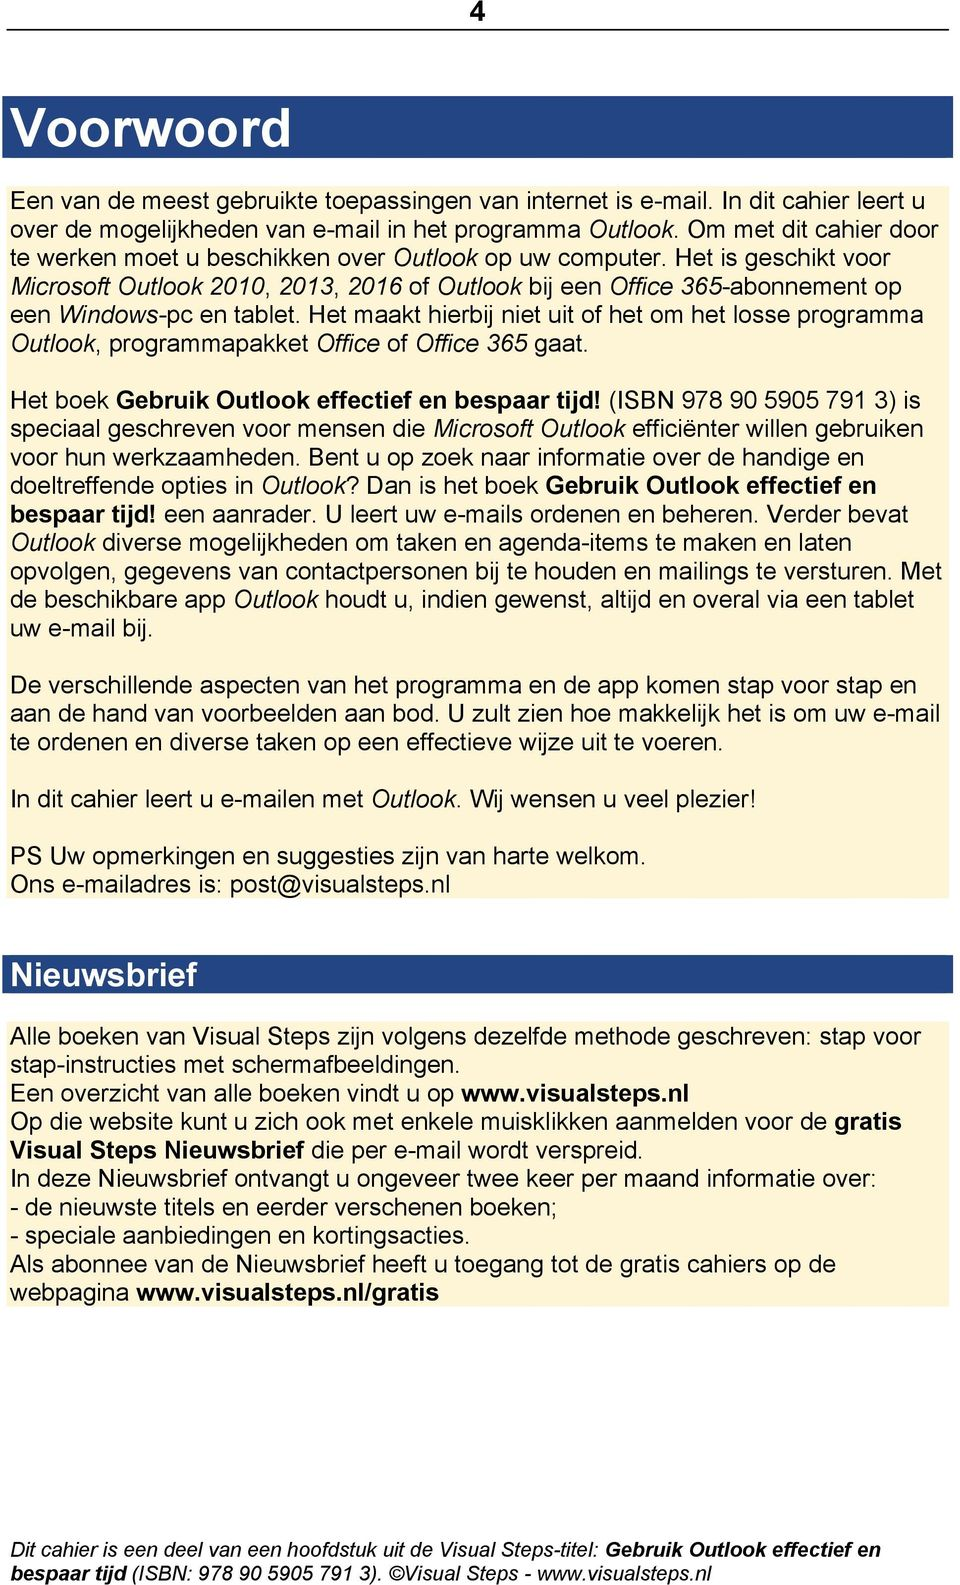 Het is geschikt voor Microsoft Outlook 2010, 2013, 2016 of Outlook bij een Office 365-abonnement op een Windows-pc en tablet.